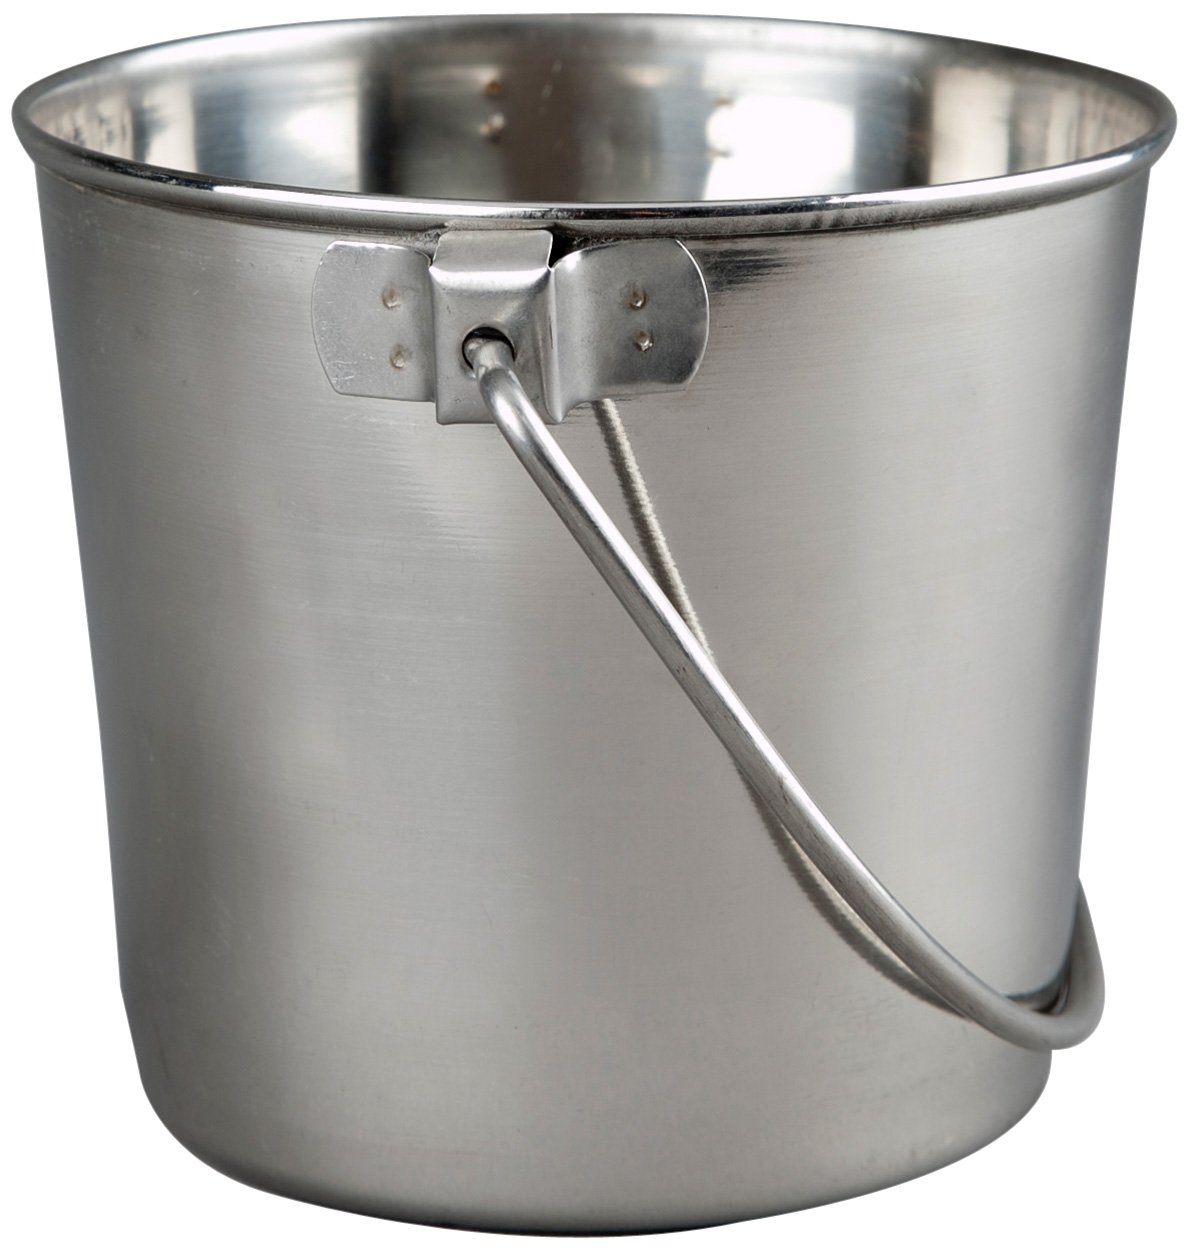 (8.5l) Advance Pet Products Heavy Stainless Steel Round Bucket